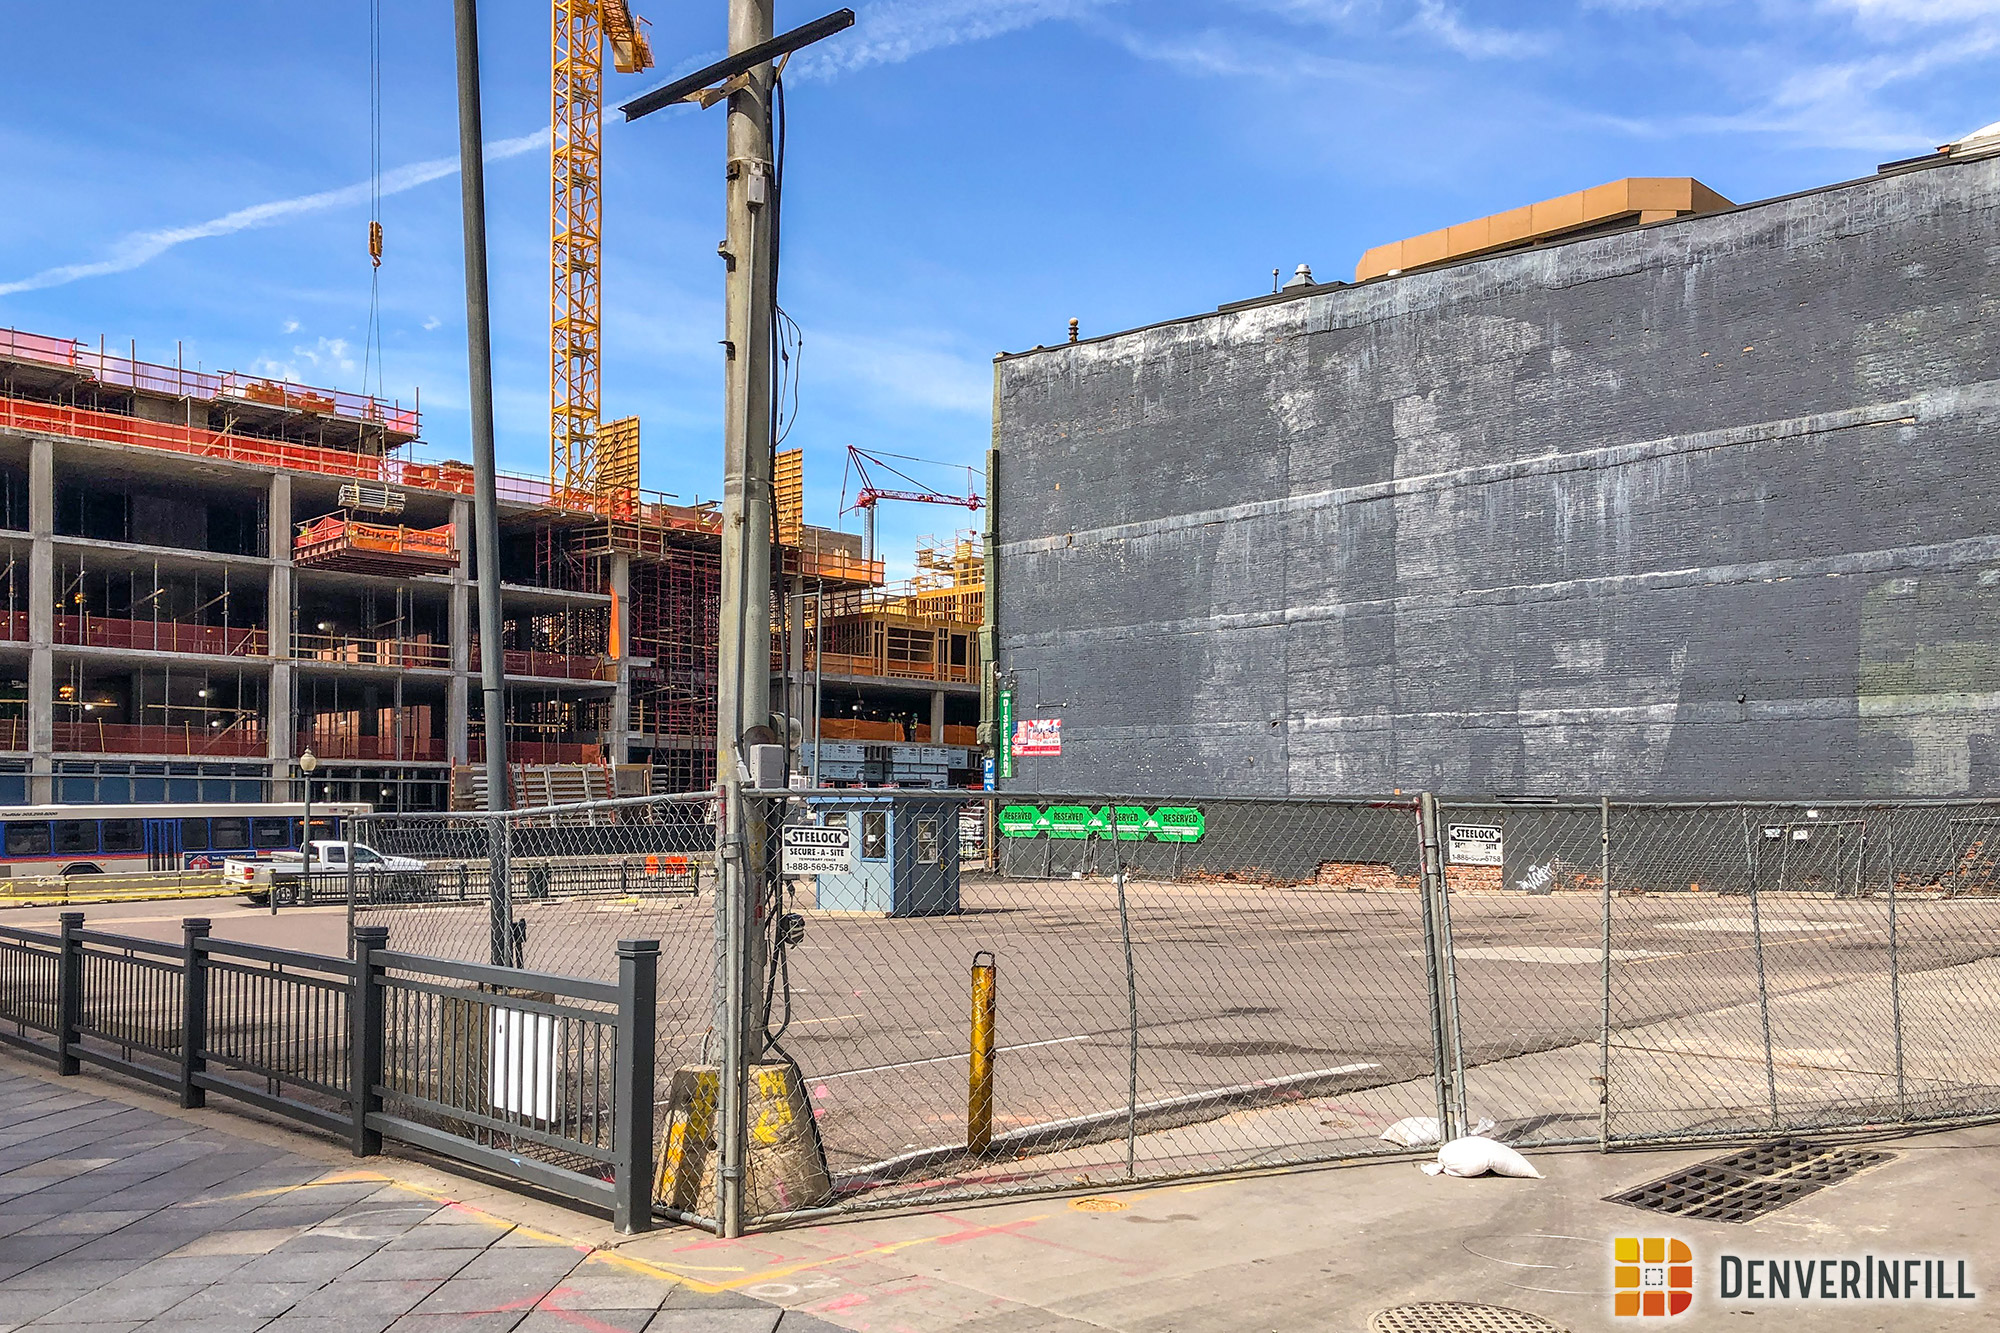 Parking lot closure at 16th and Market in preparation for construction of the Thompson Denver hotel